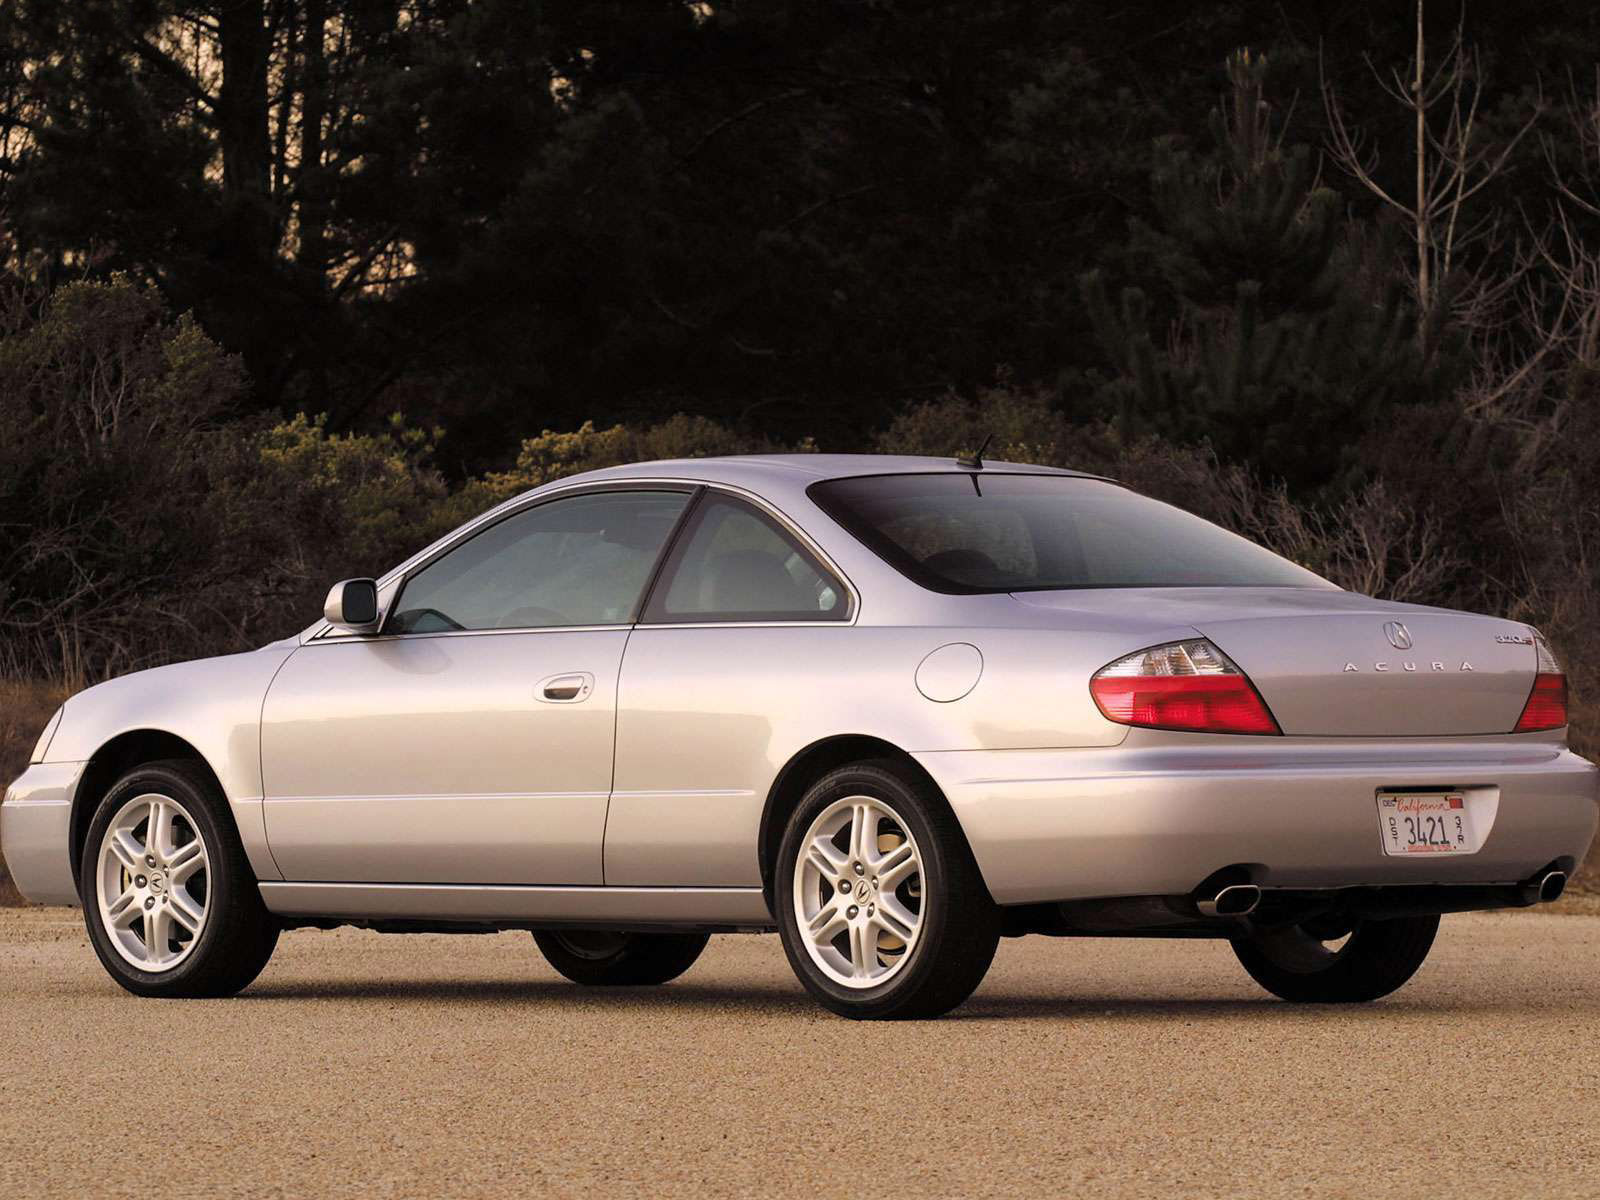 2003 Acura 3.2 CL Type-S photo - 5